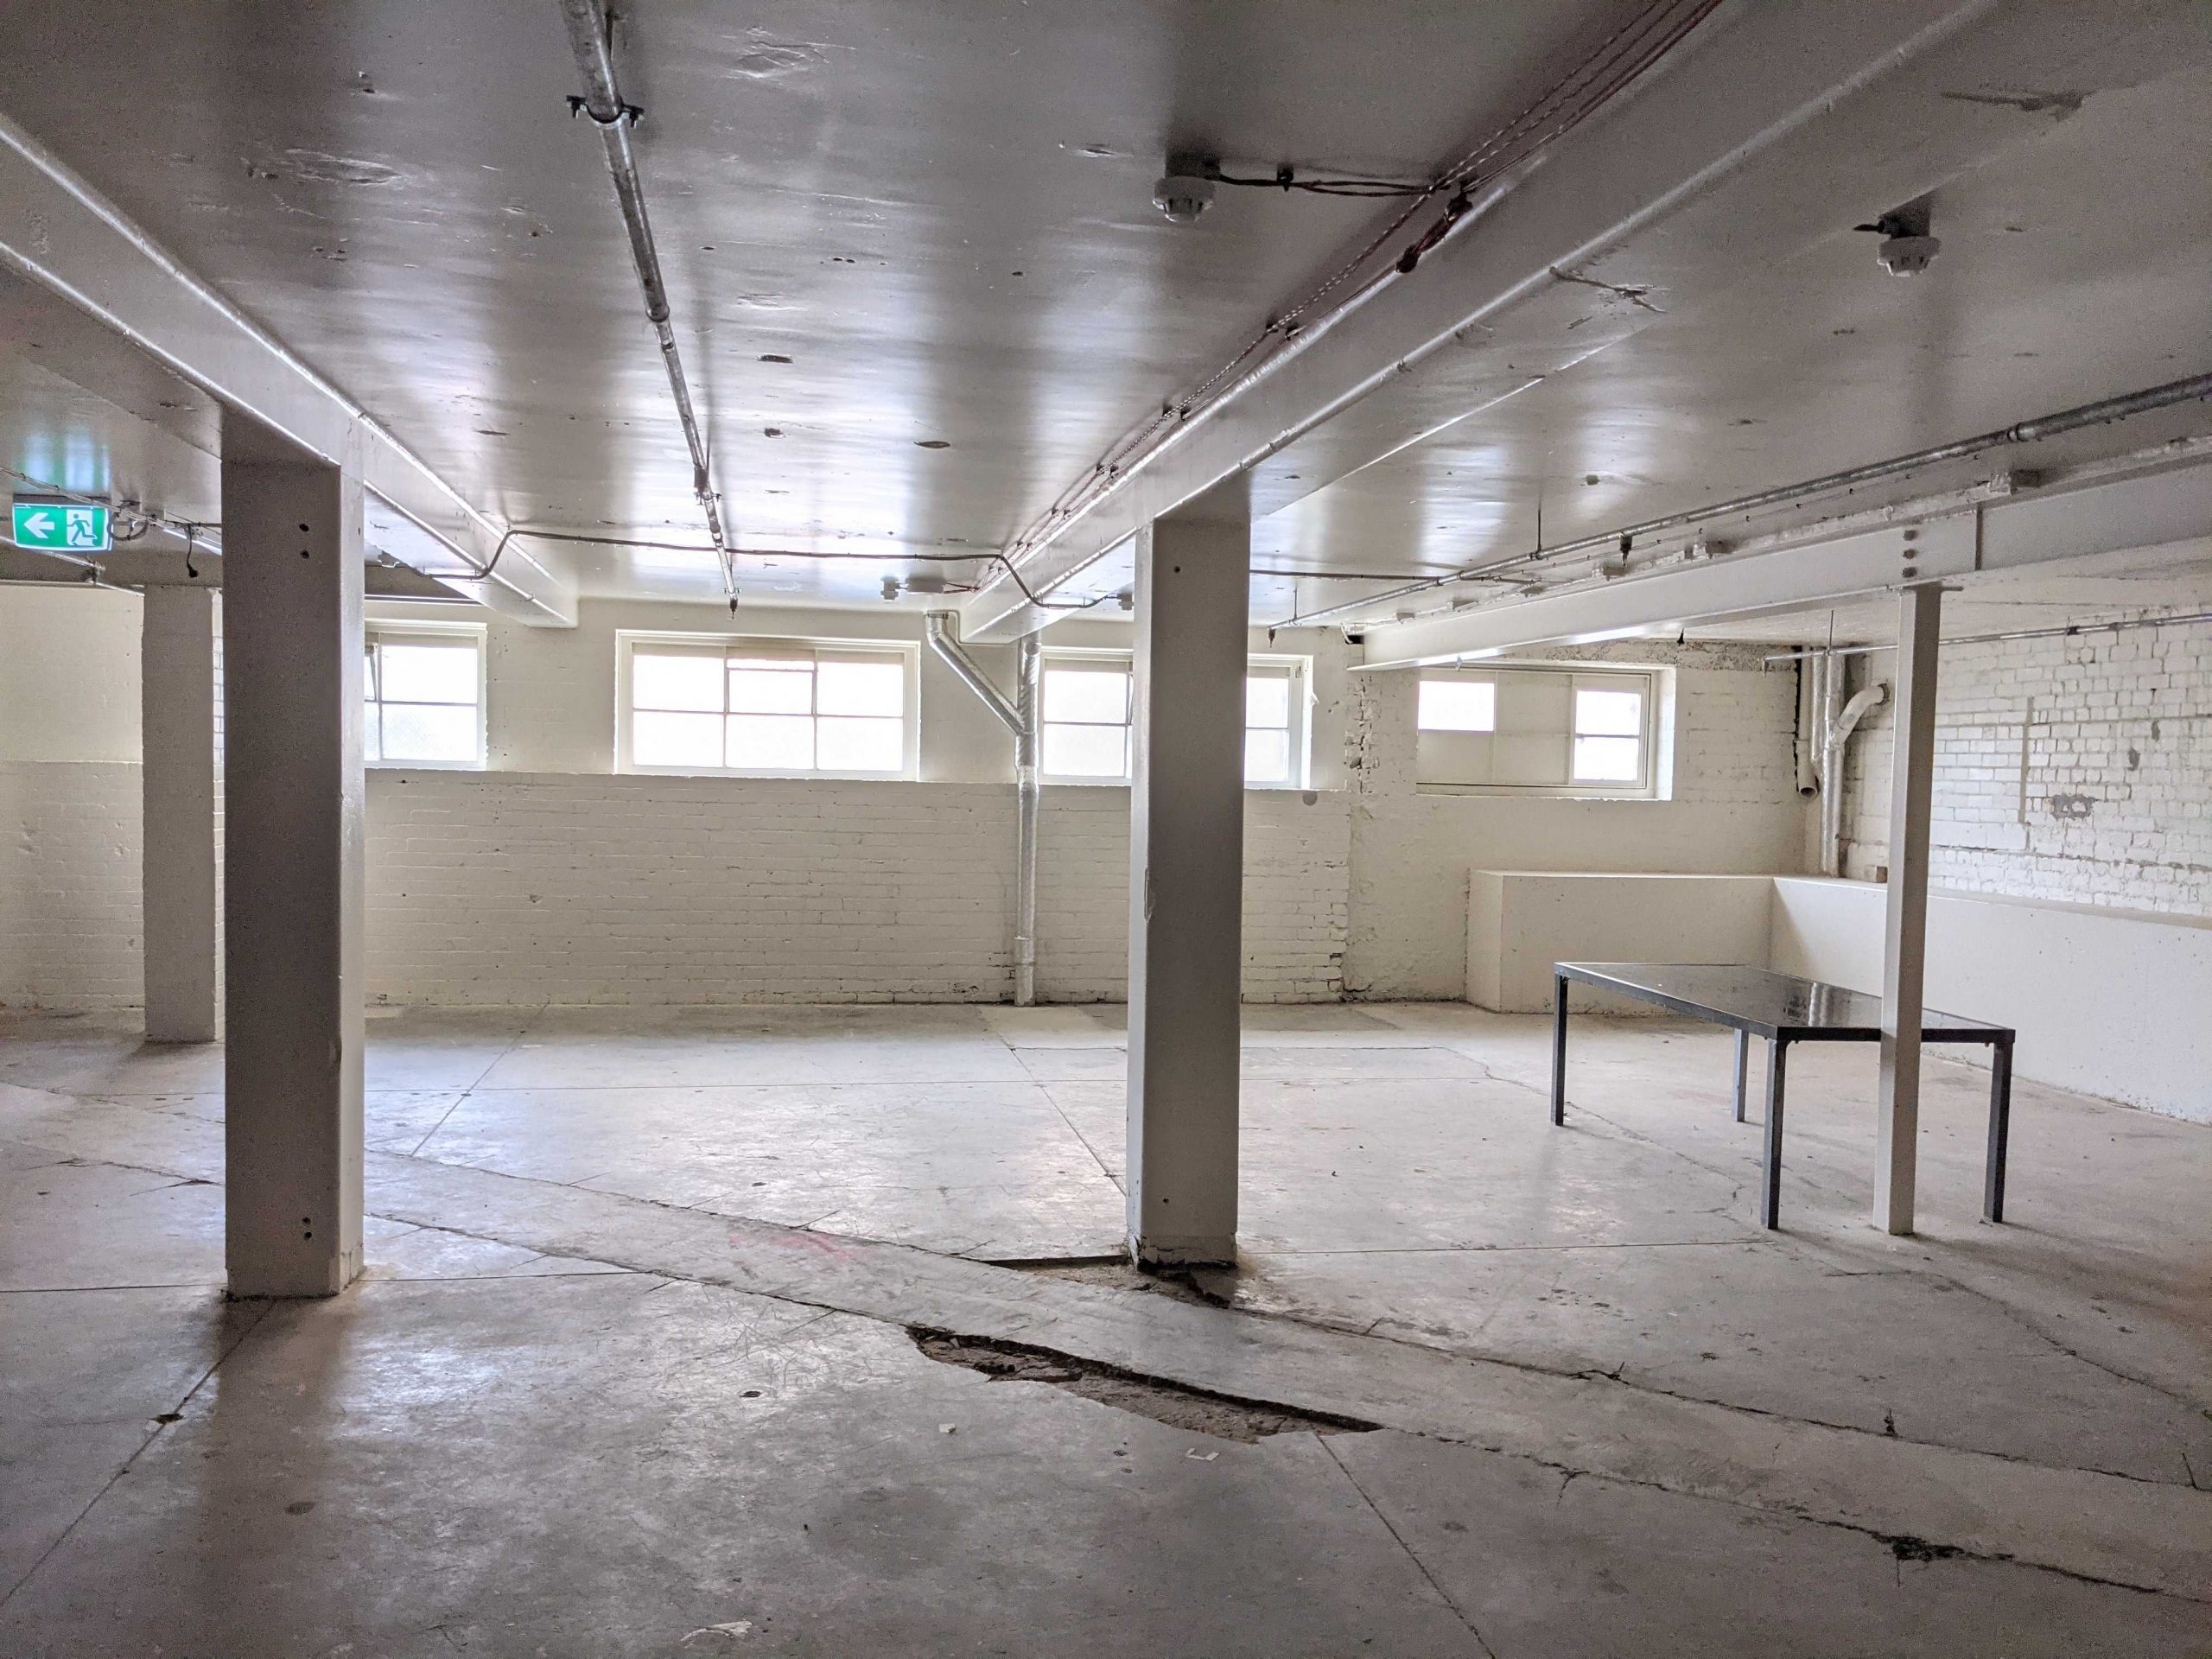 Interiors of an industrial space with white walls